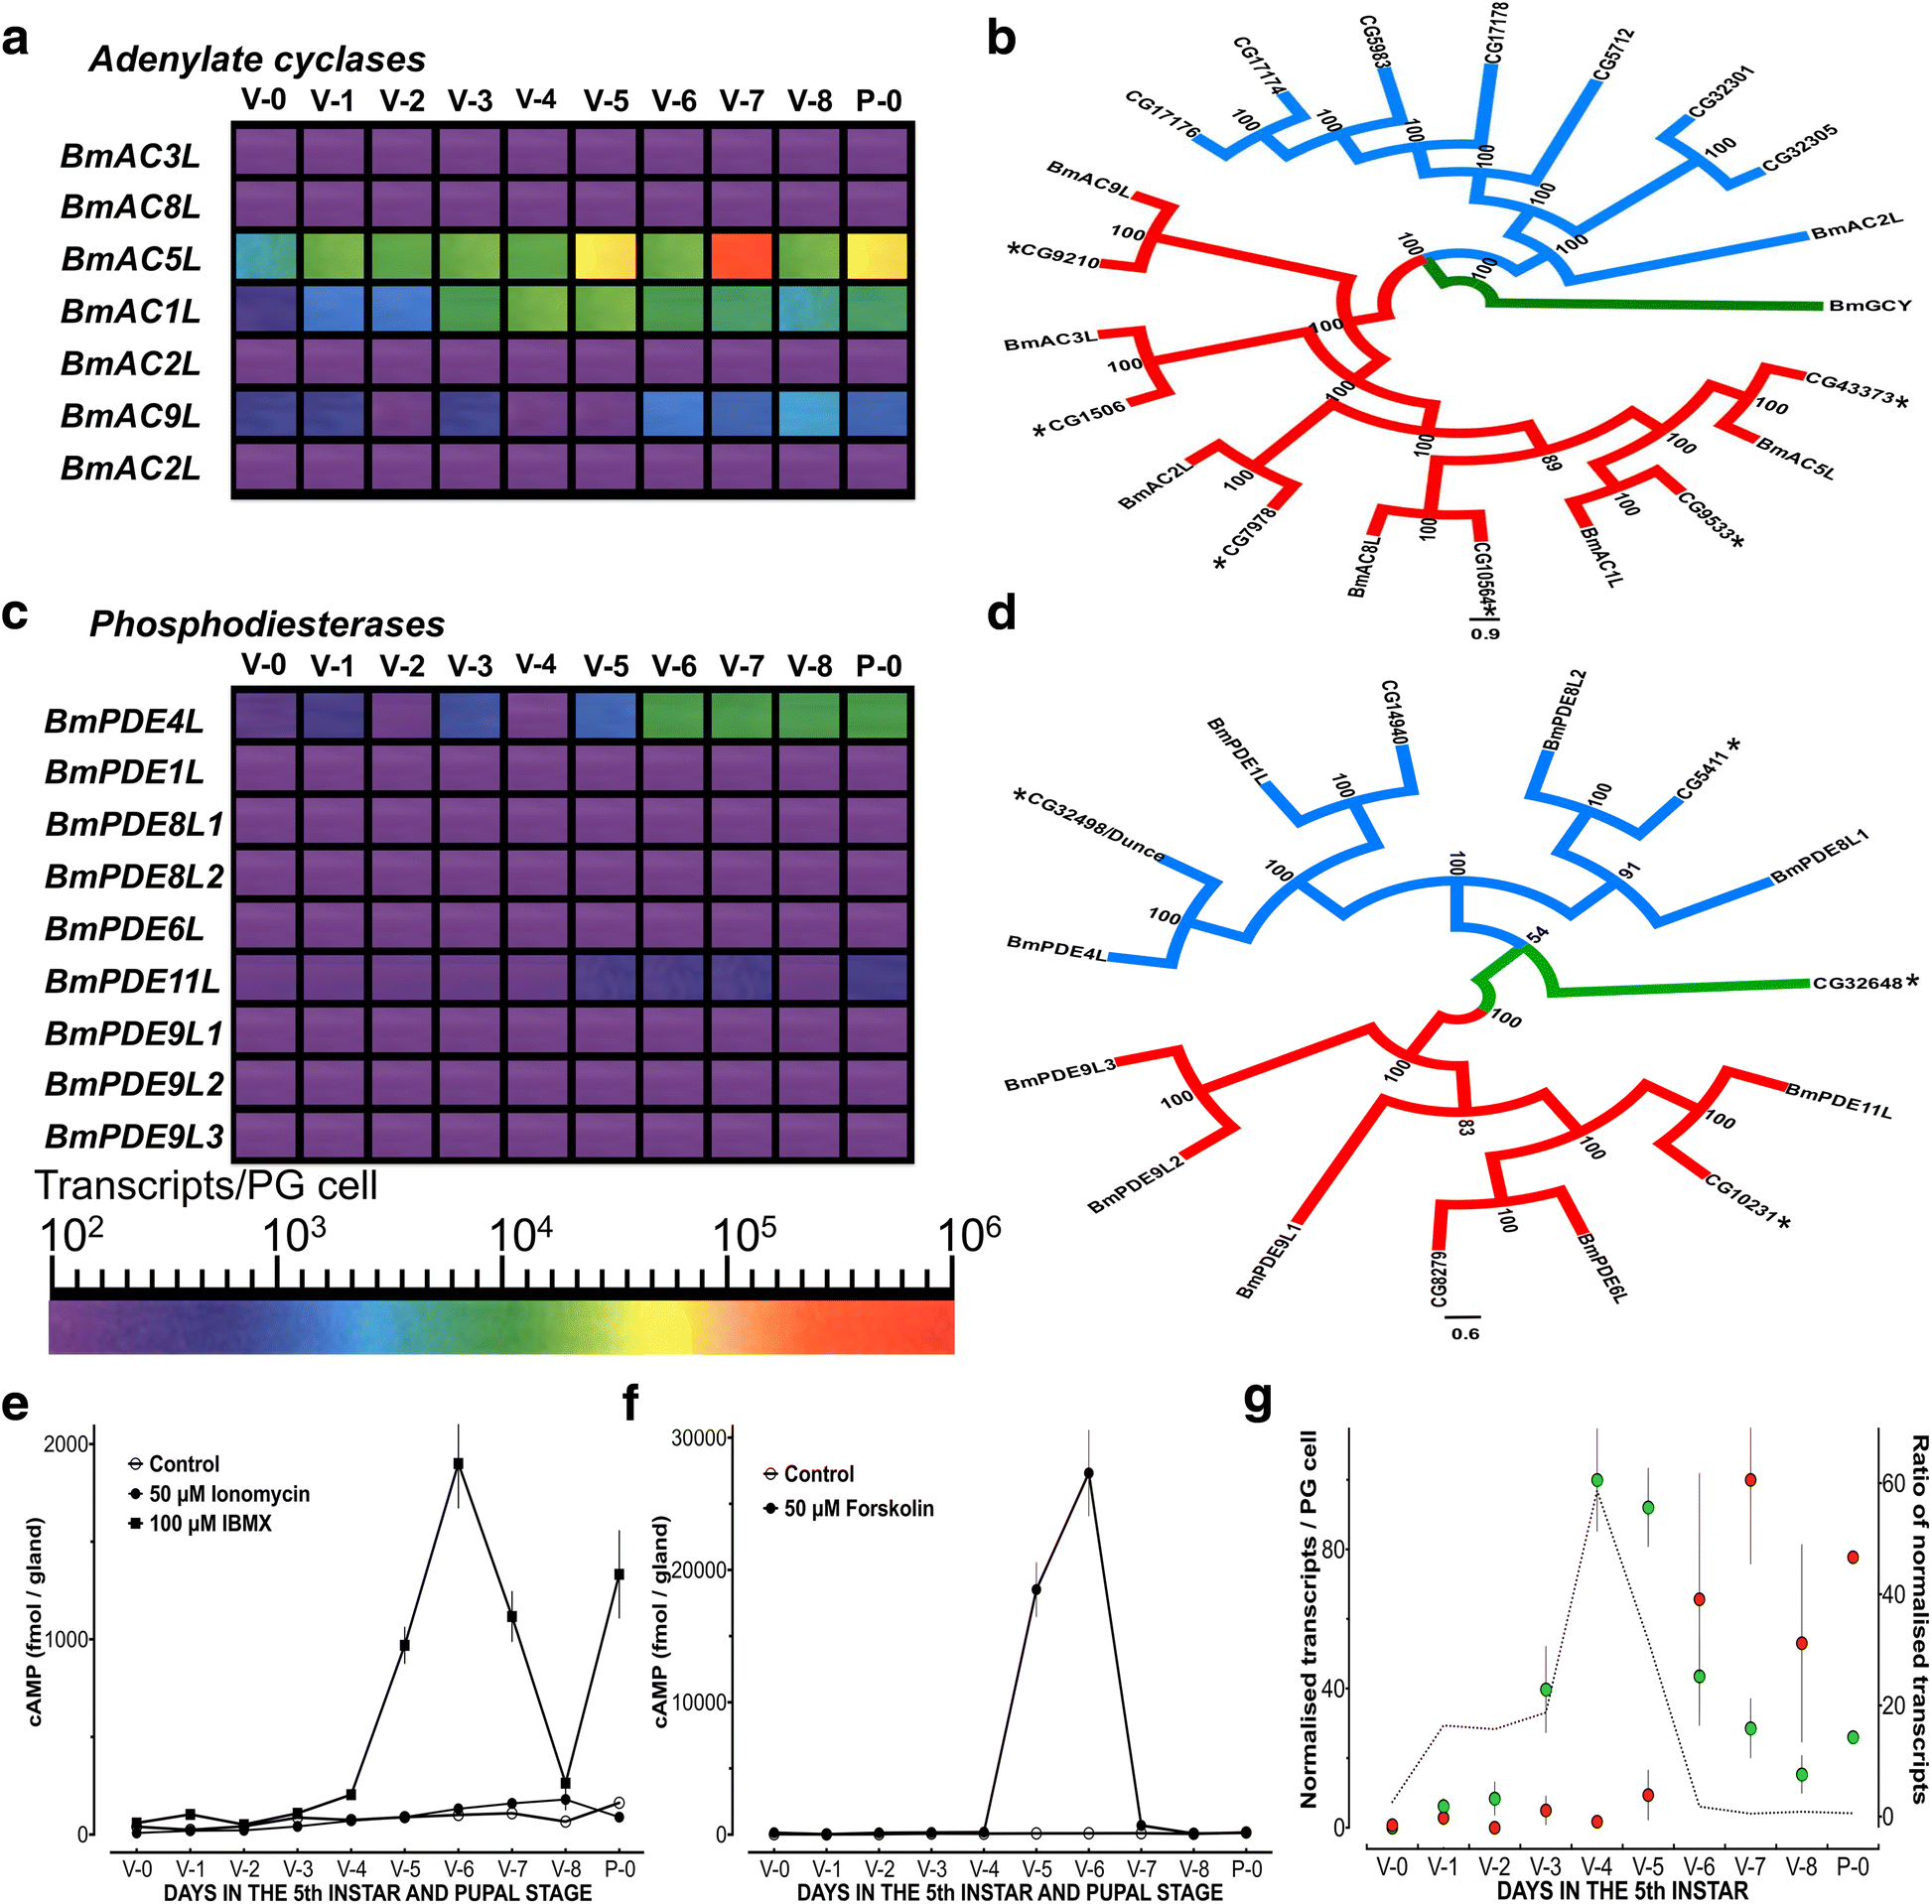 Refining A Steroidogenic Model An Analysis Of Rna Seq Datasets From The Free Encyclopedia Electronic Circuit Design Software Fig 3